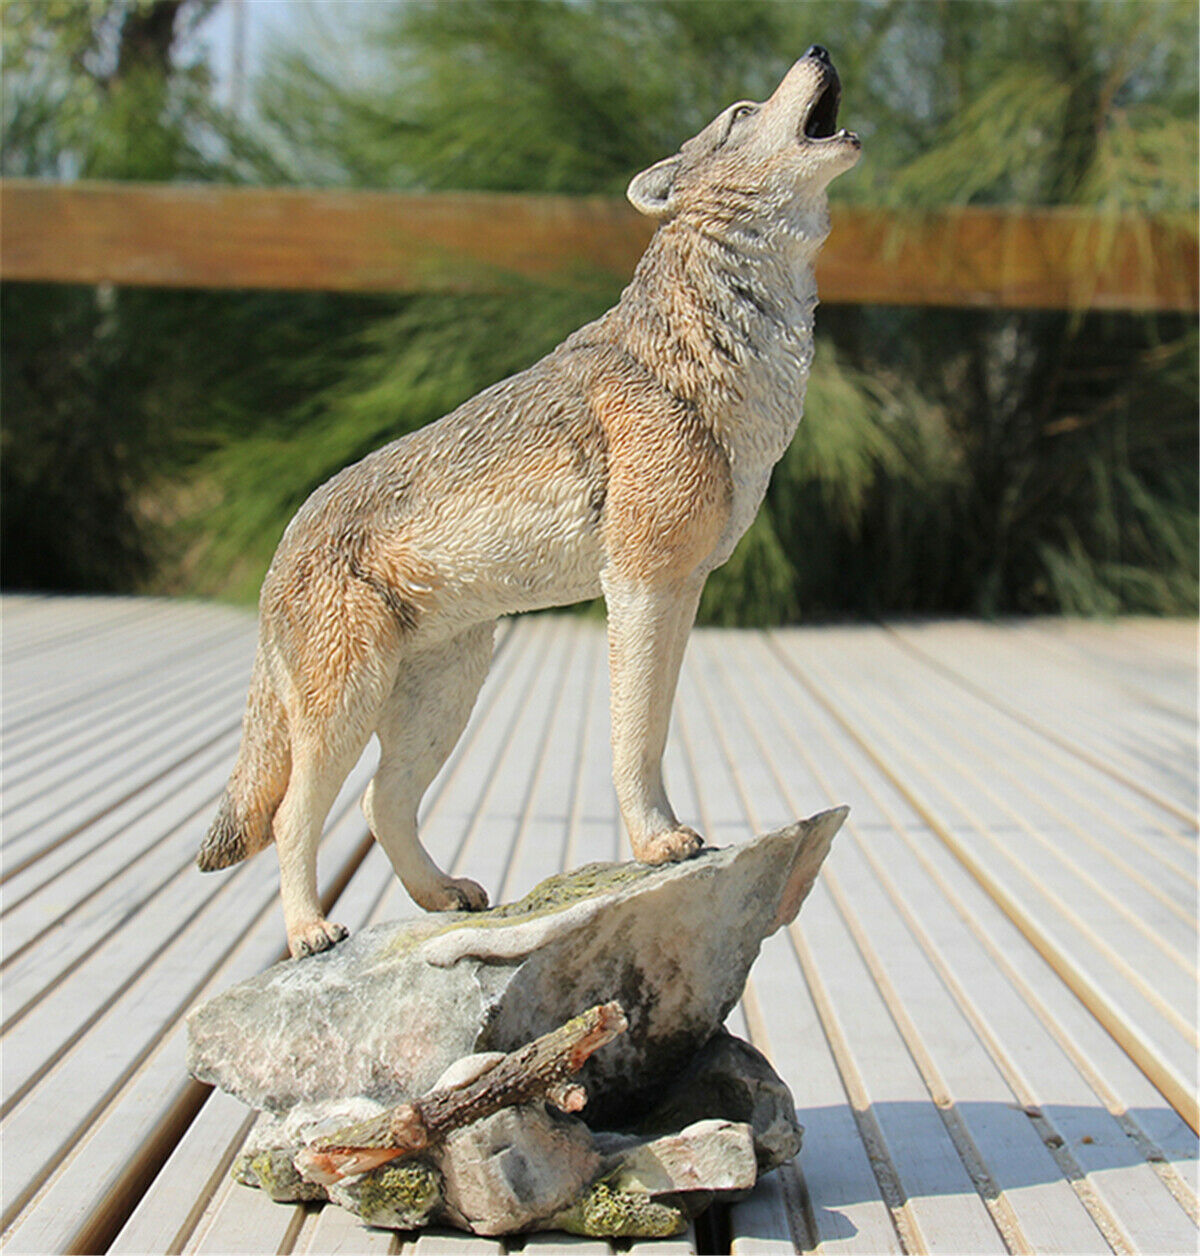 JJM Wolf Coyote Model Animal Figure Resin Toy Collector Decor Base Gift Canis lupus Educational for Children Adults Kids Gift